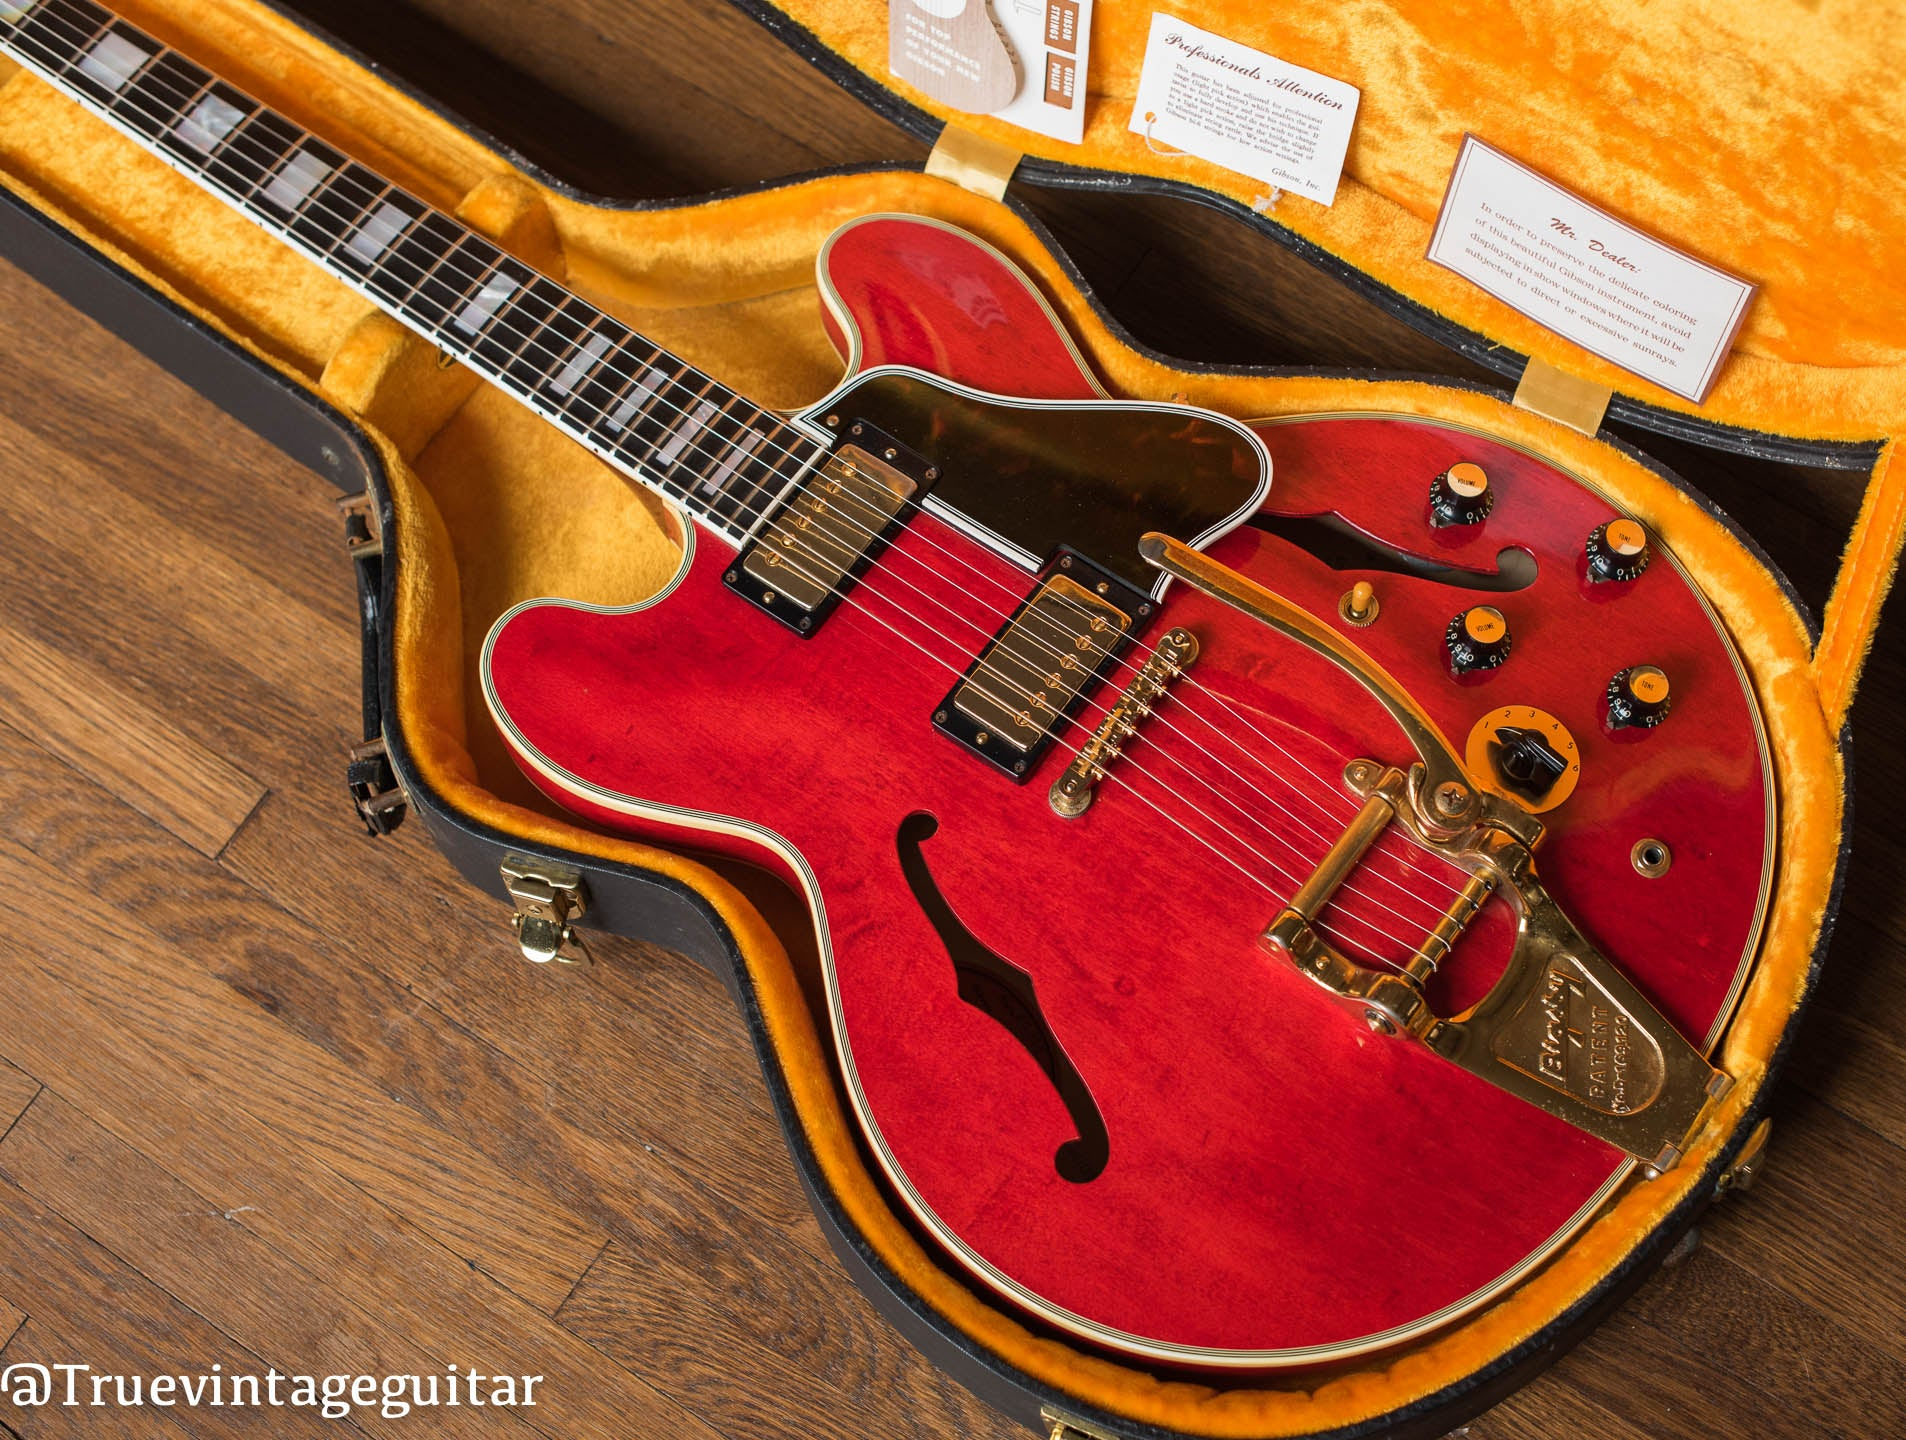 Vintage 1960 Gibson ES-355 red guitar yellow case